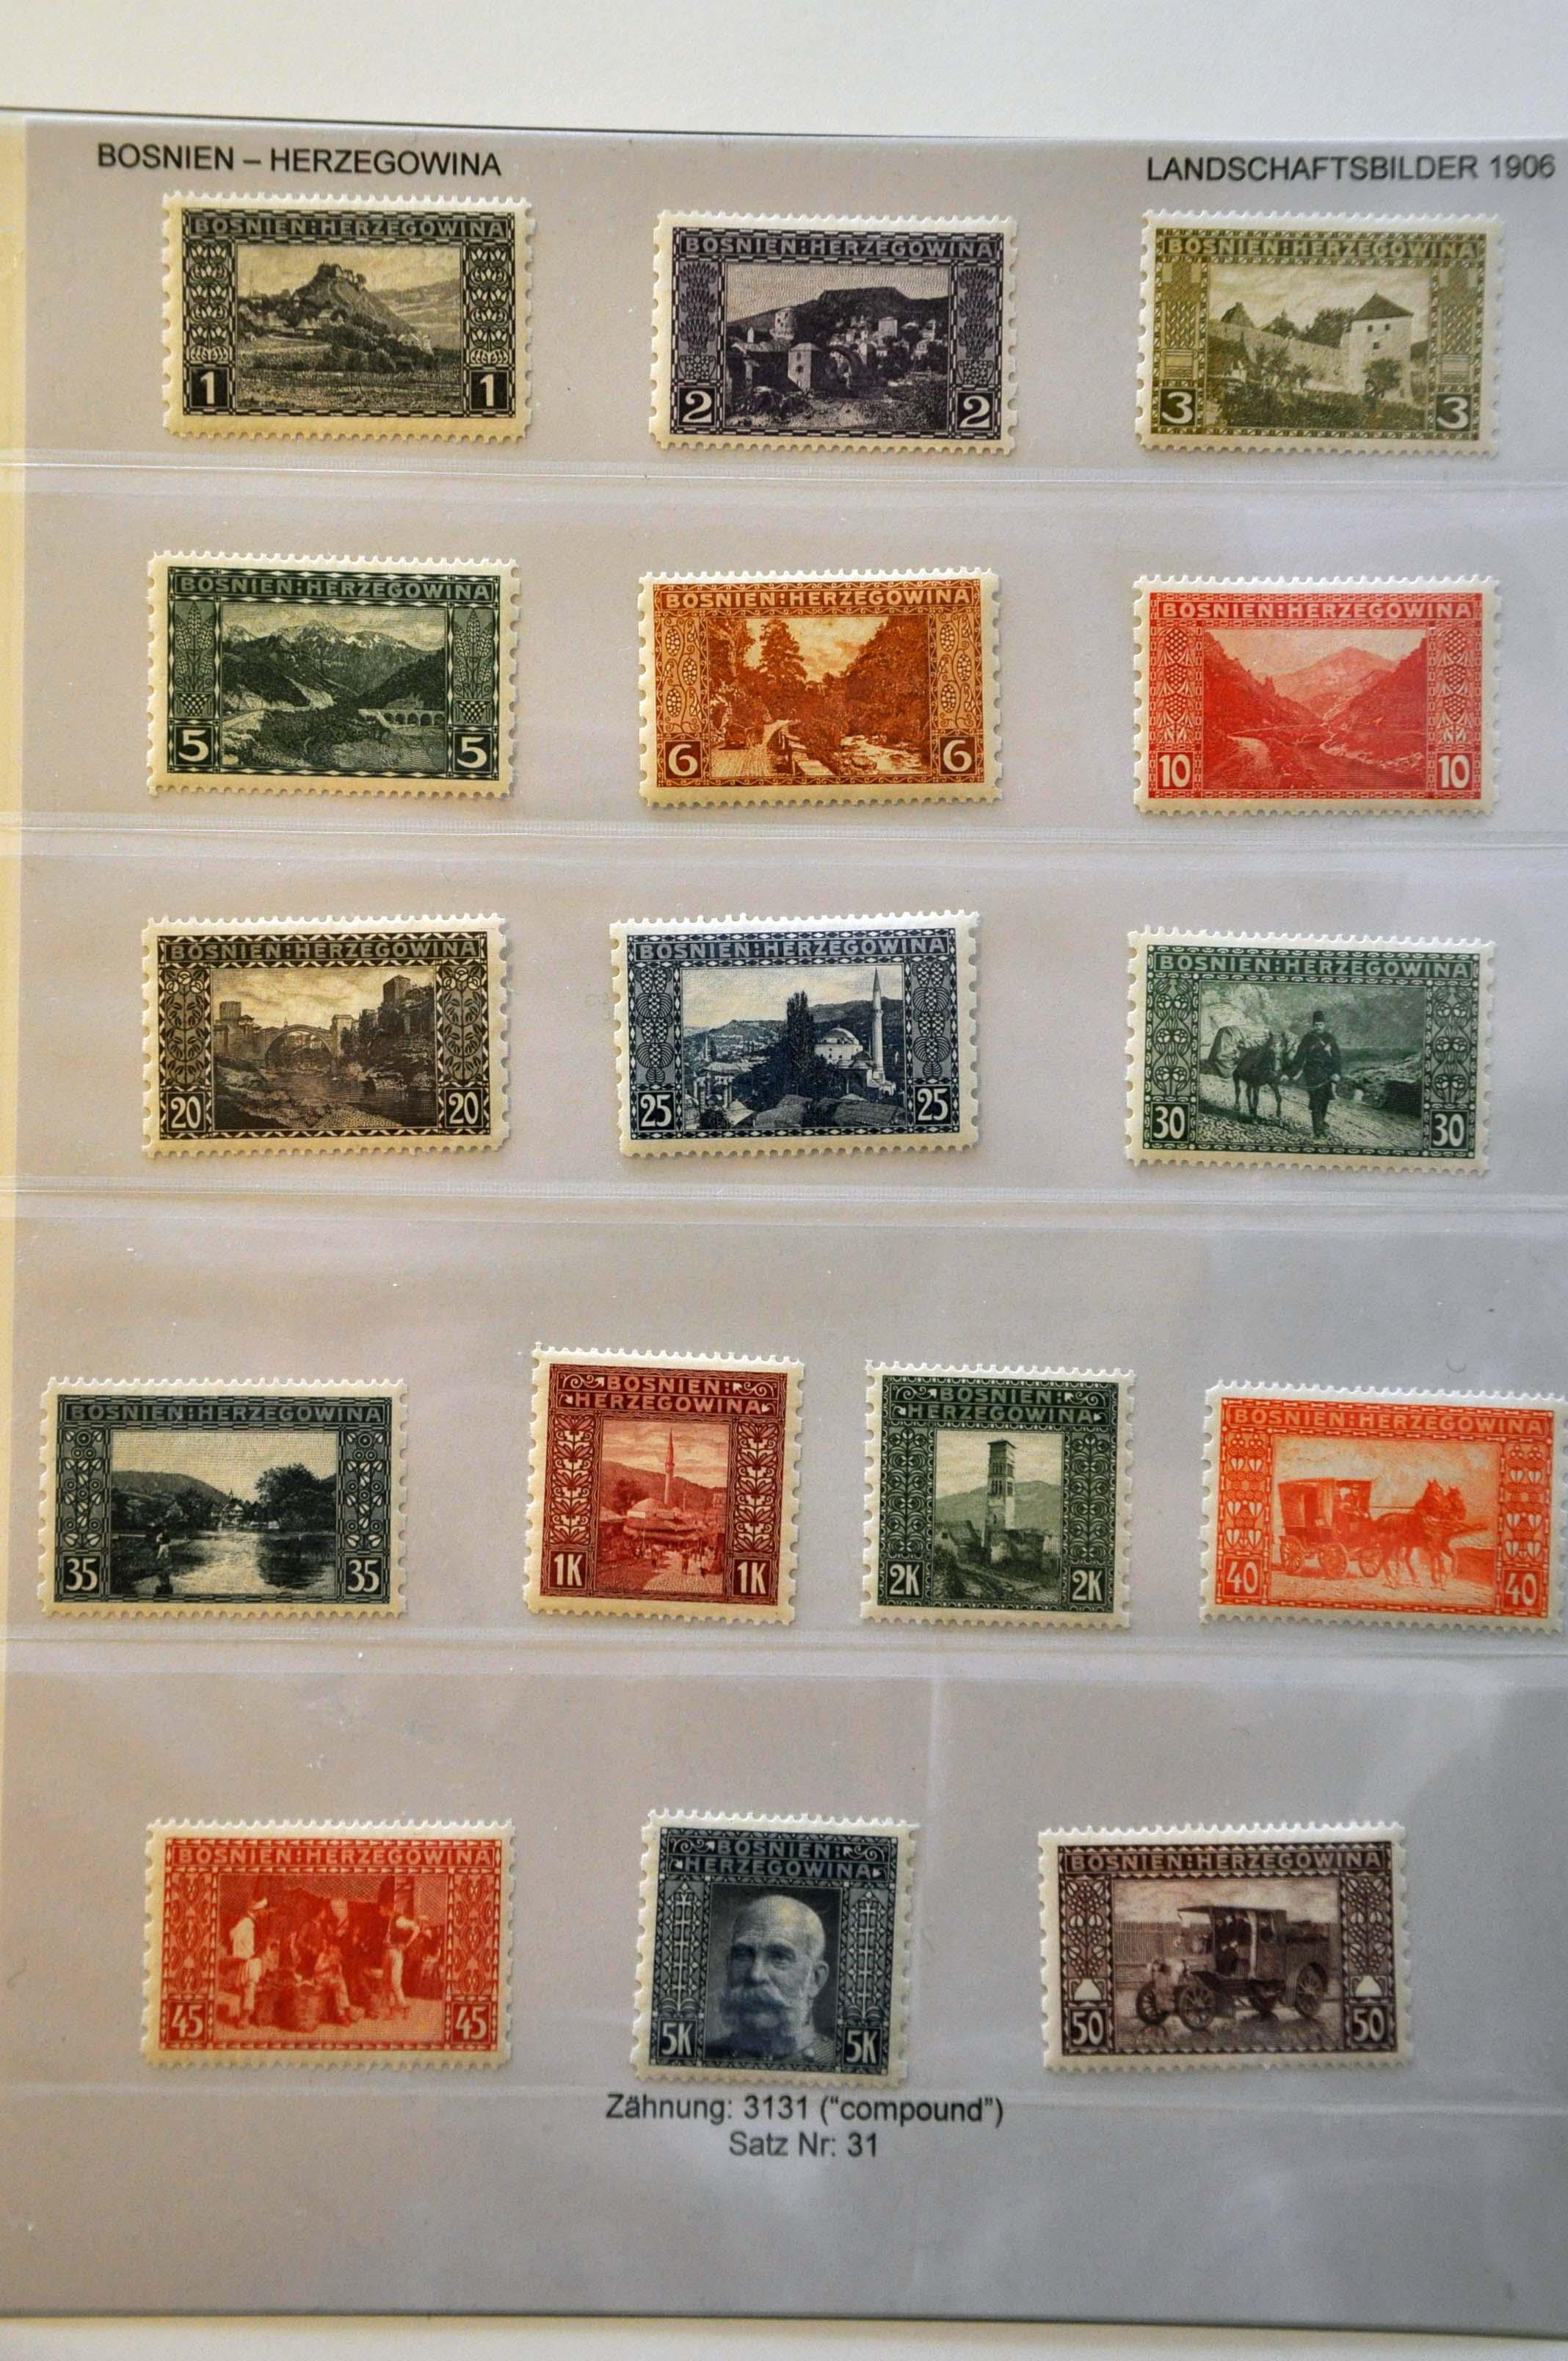 Lot 25 - Austria and former territories Bosnia and Herzegowina (Austrian) -  Corinphila Veilingen Auction 244 -Netherlands and former colonies, WW2 Postal History, Bosnia, German and British colonies, Egypt. - Day 1